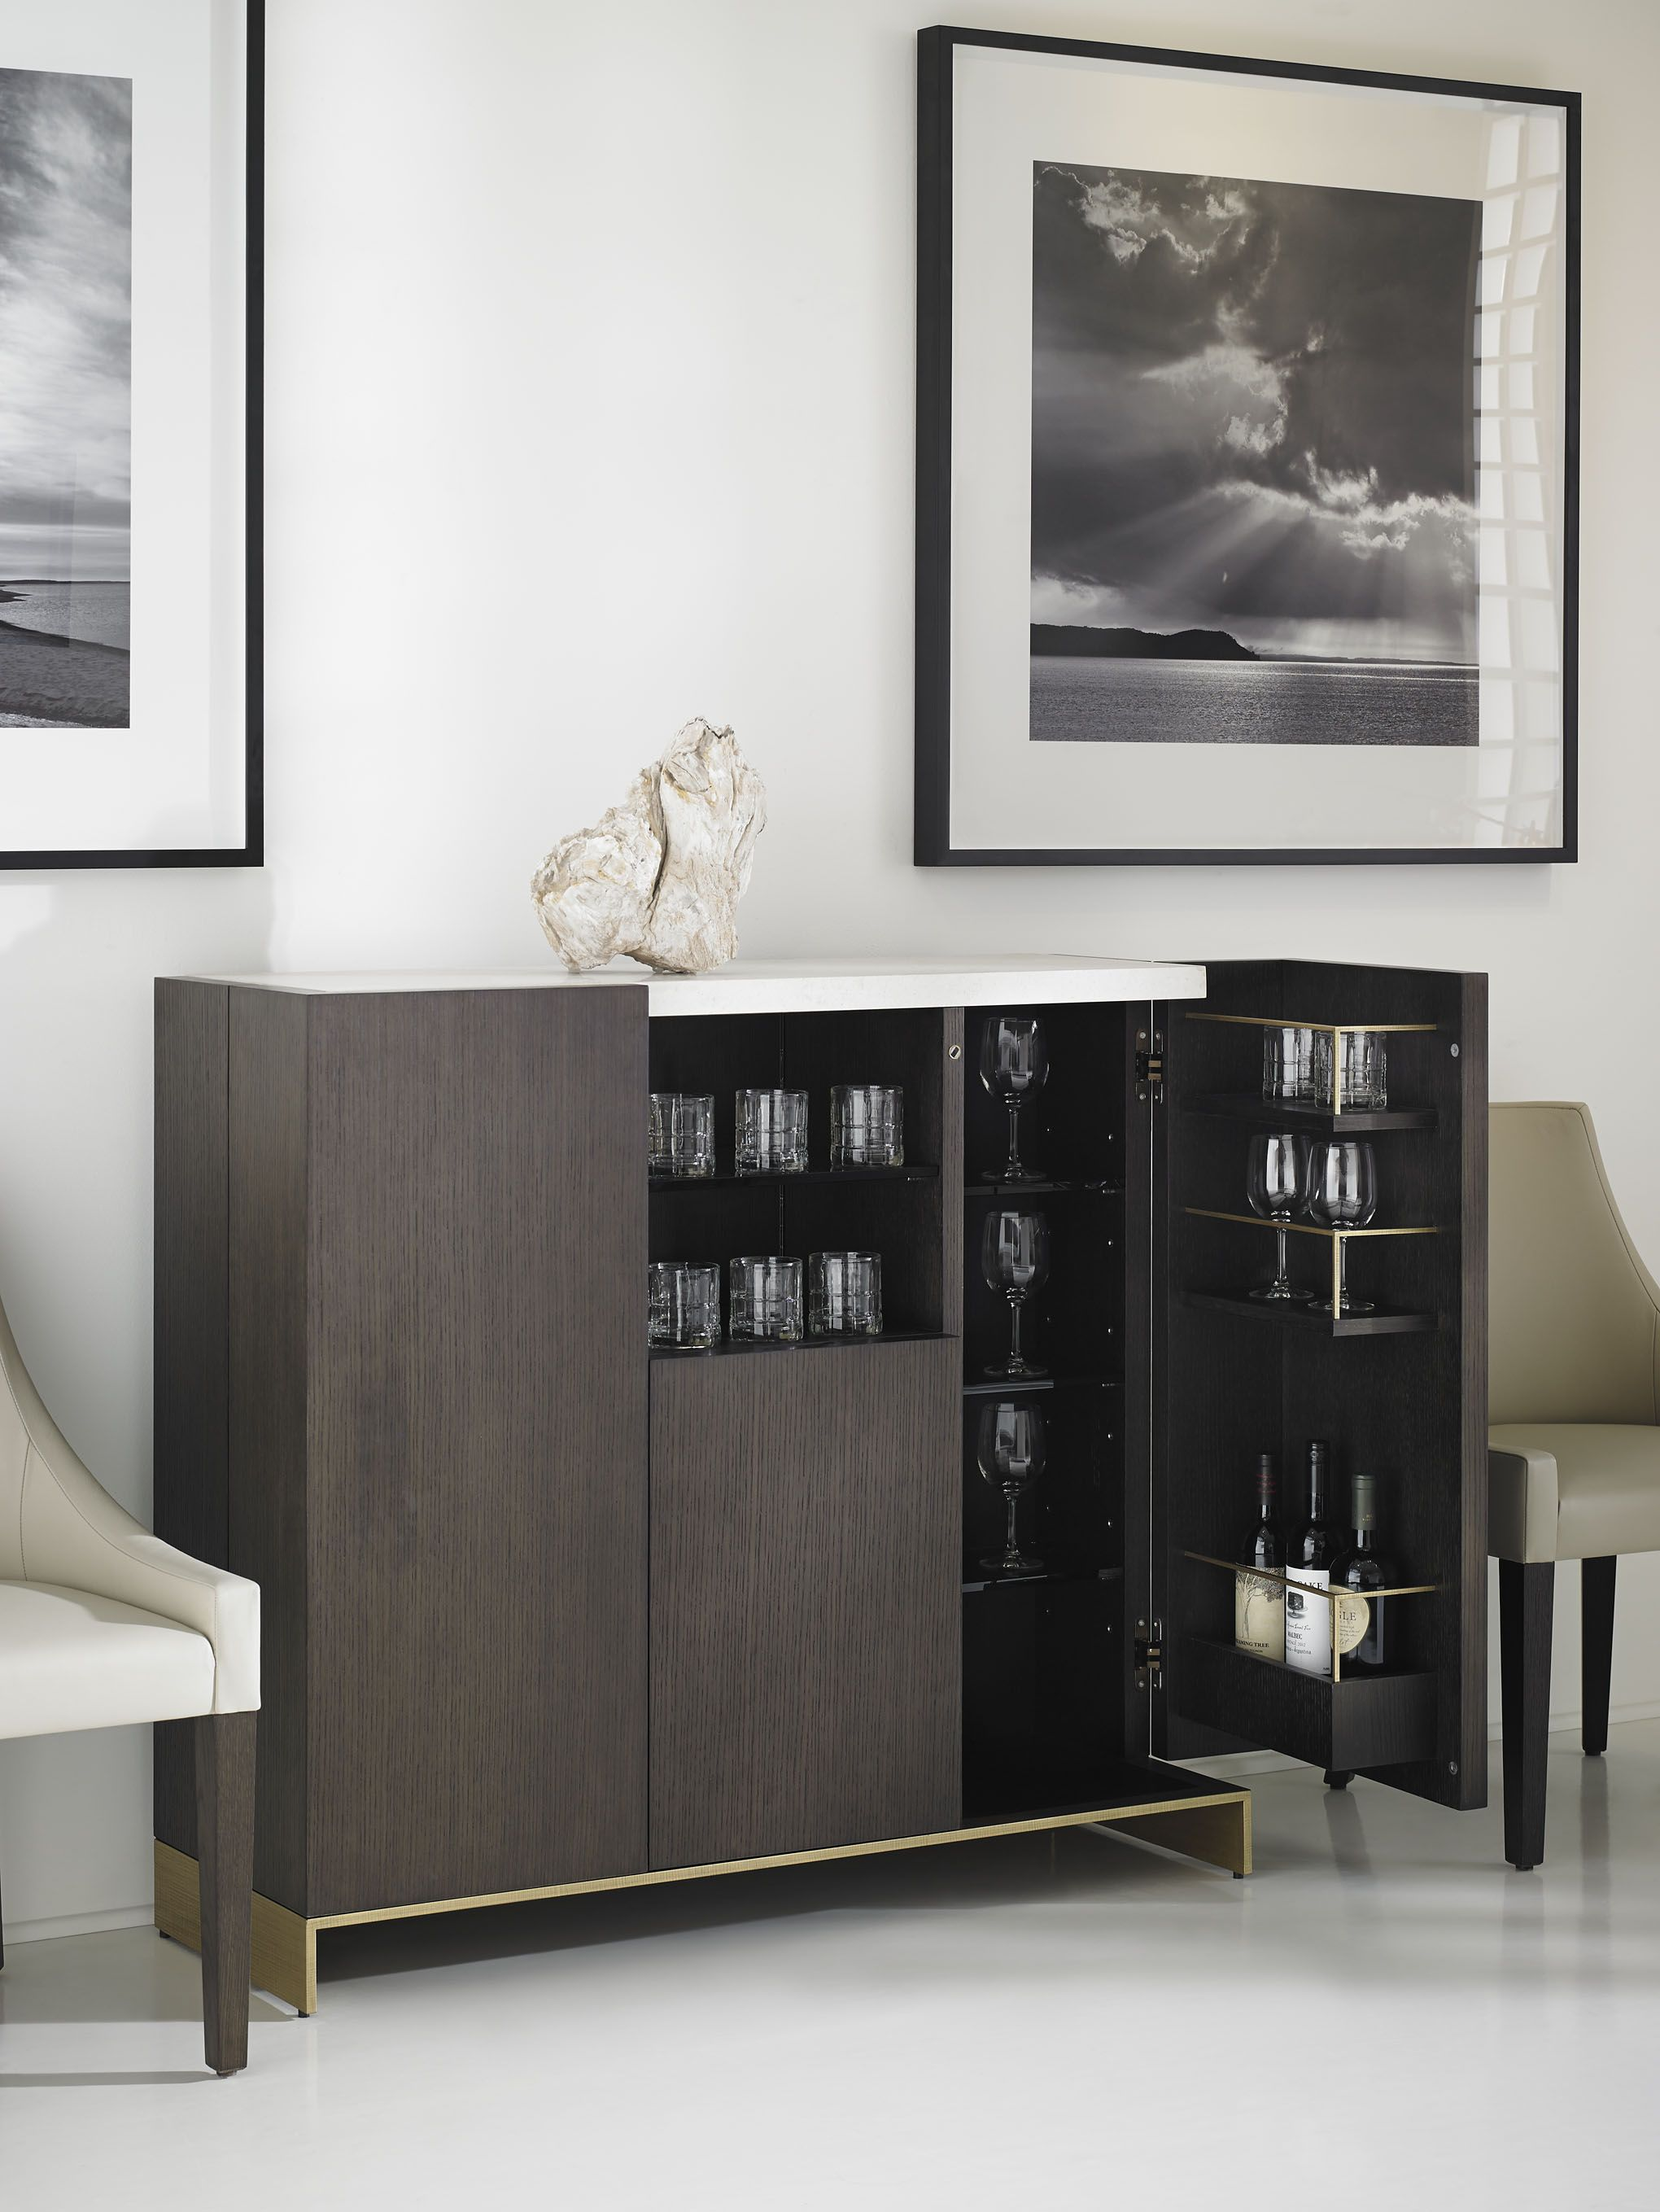 193005 // Objets Bar Cabinet Rift Cut Oak with Marble Top and Bronze Base